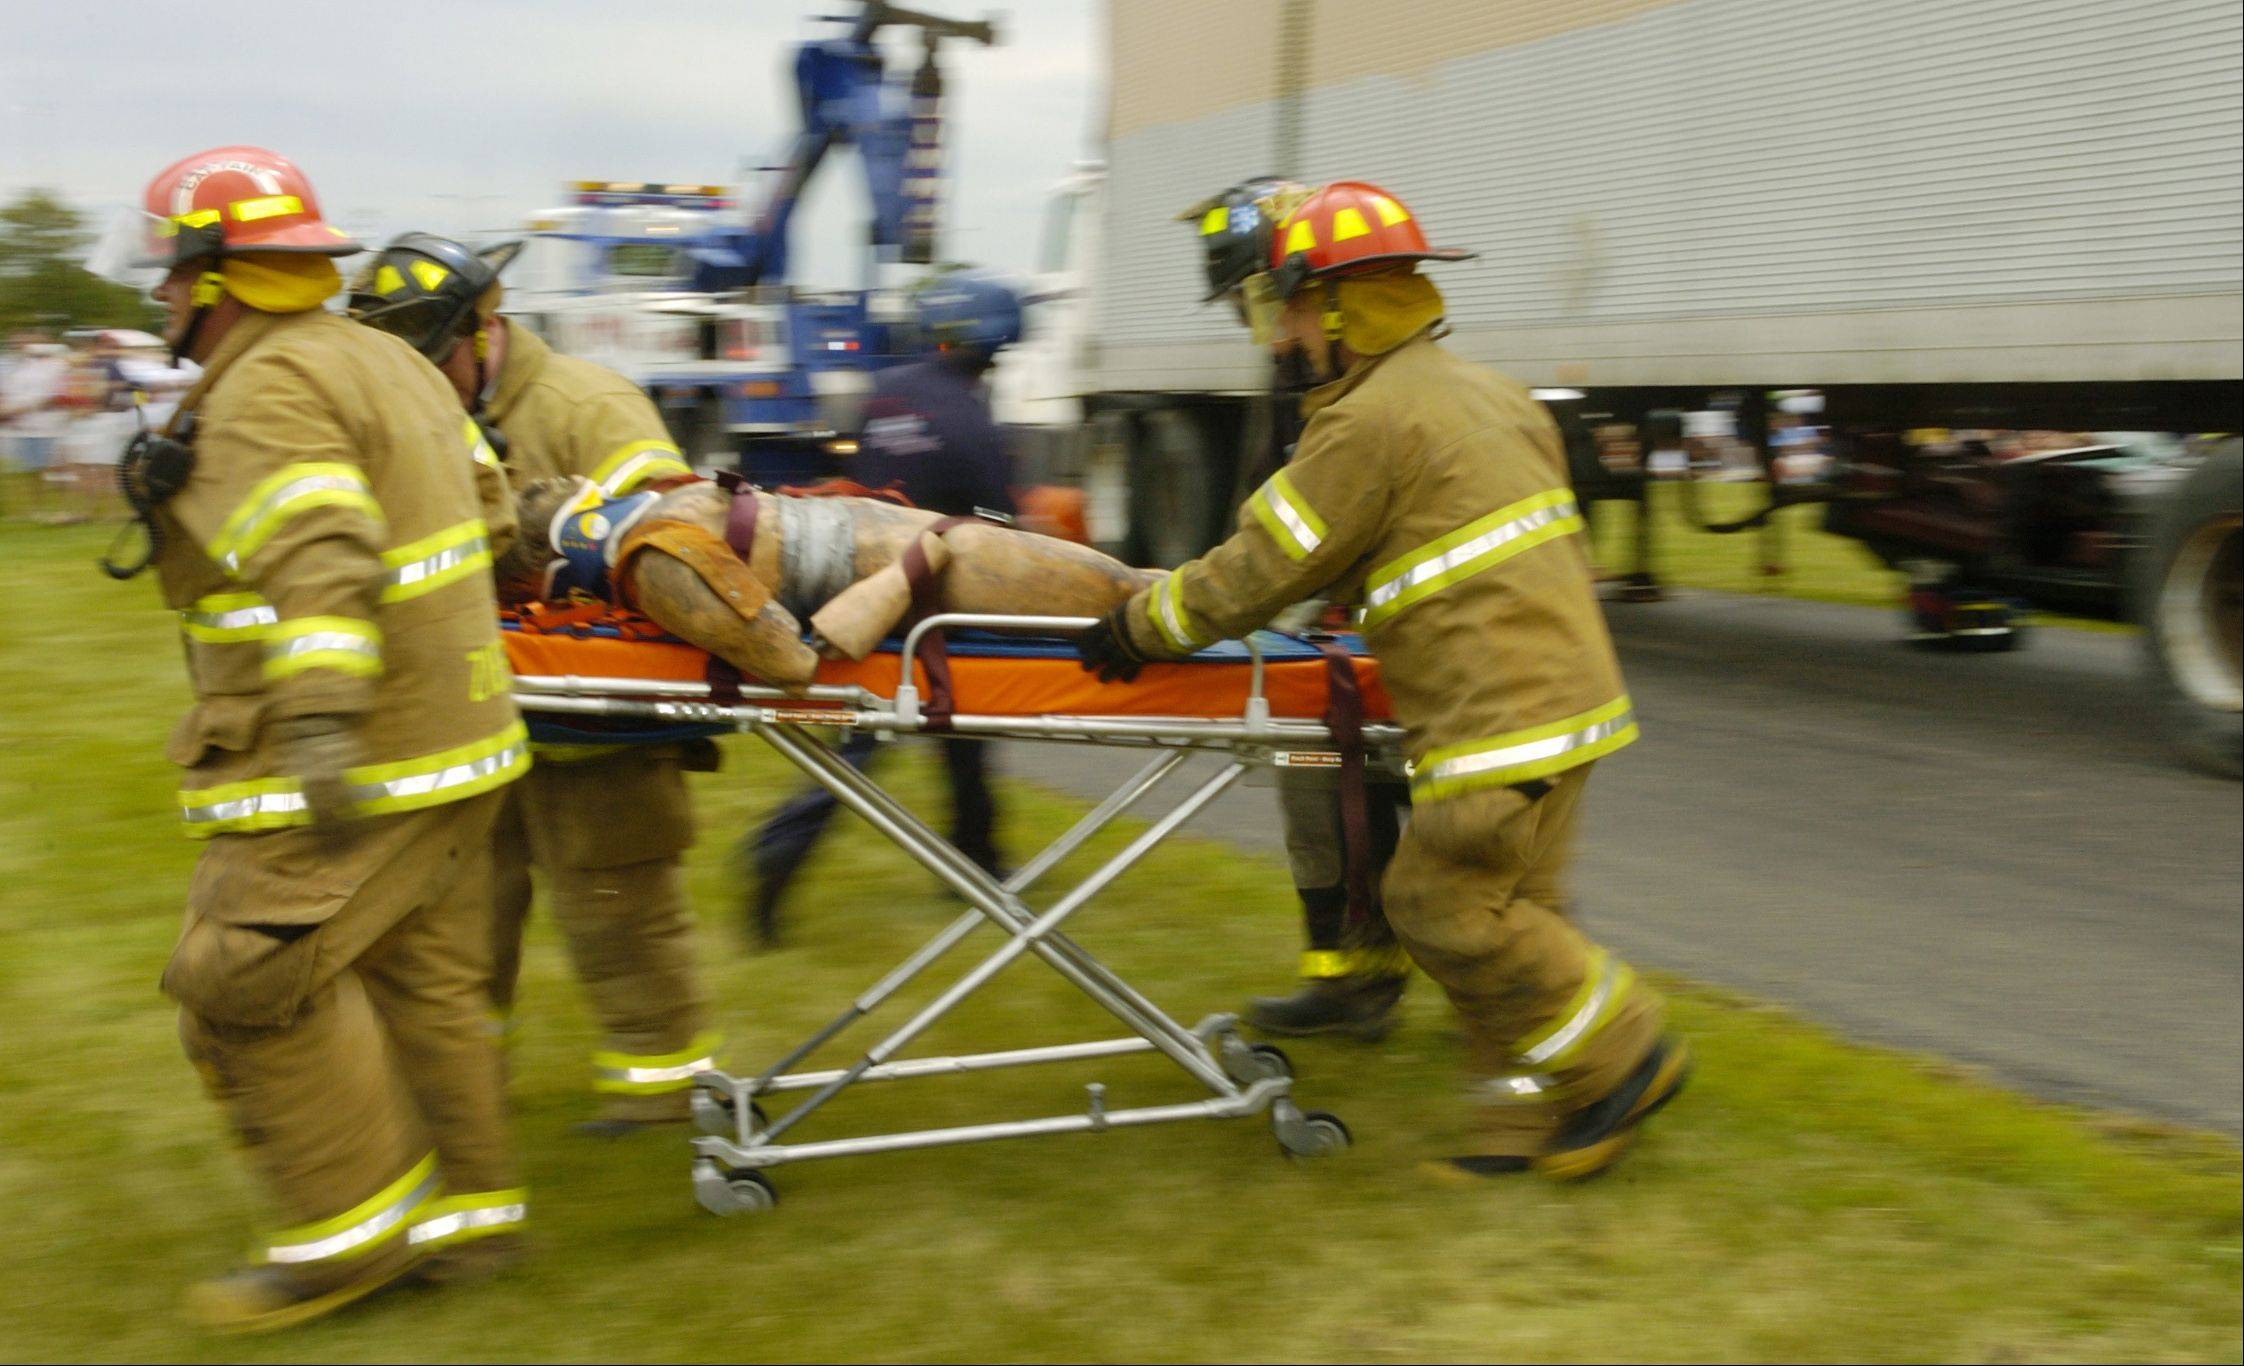 North Aurora firefighters quickly wheel a mannequin to a waiting helicopter during an extrication demonstration during last year's Emergency Vehicle Show.